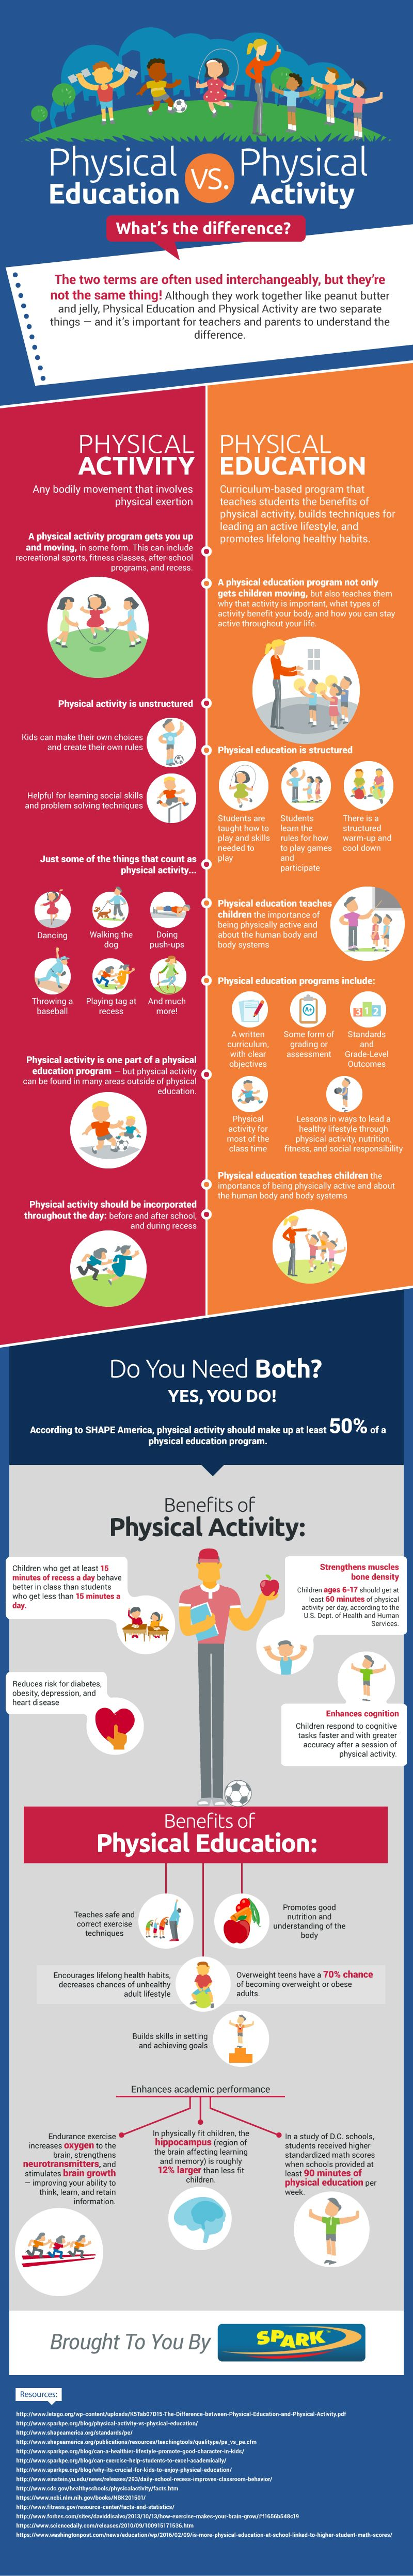 The differences between physical activity and physical